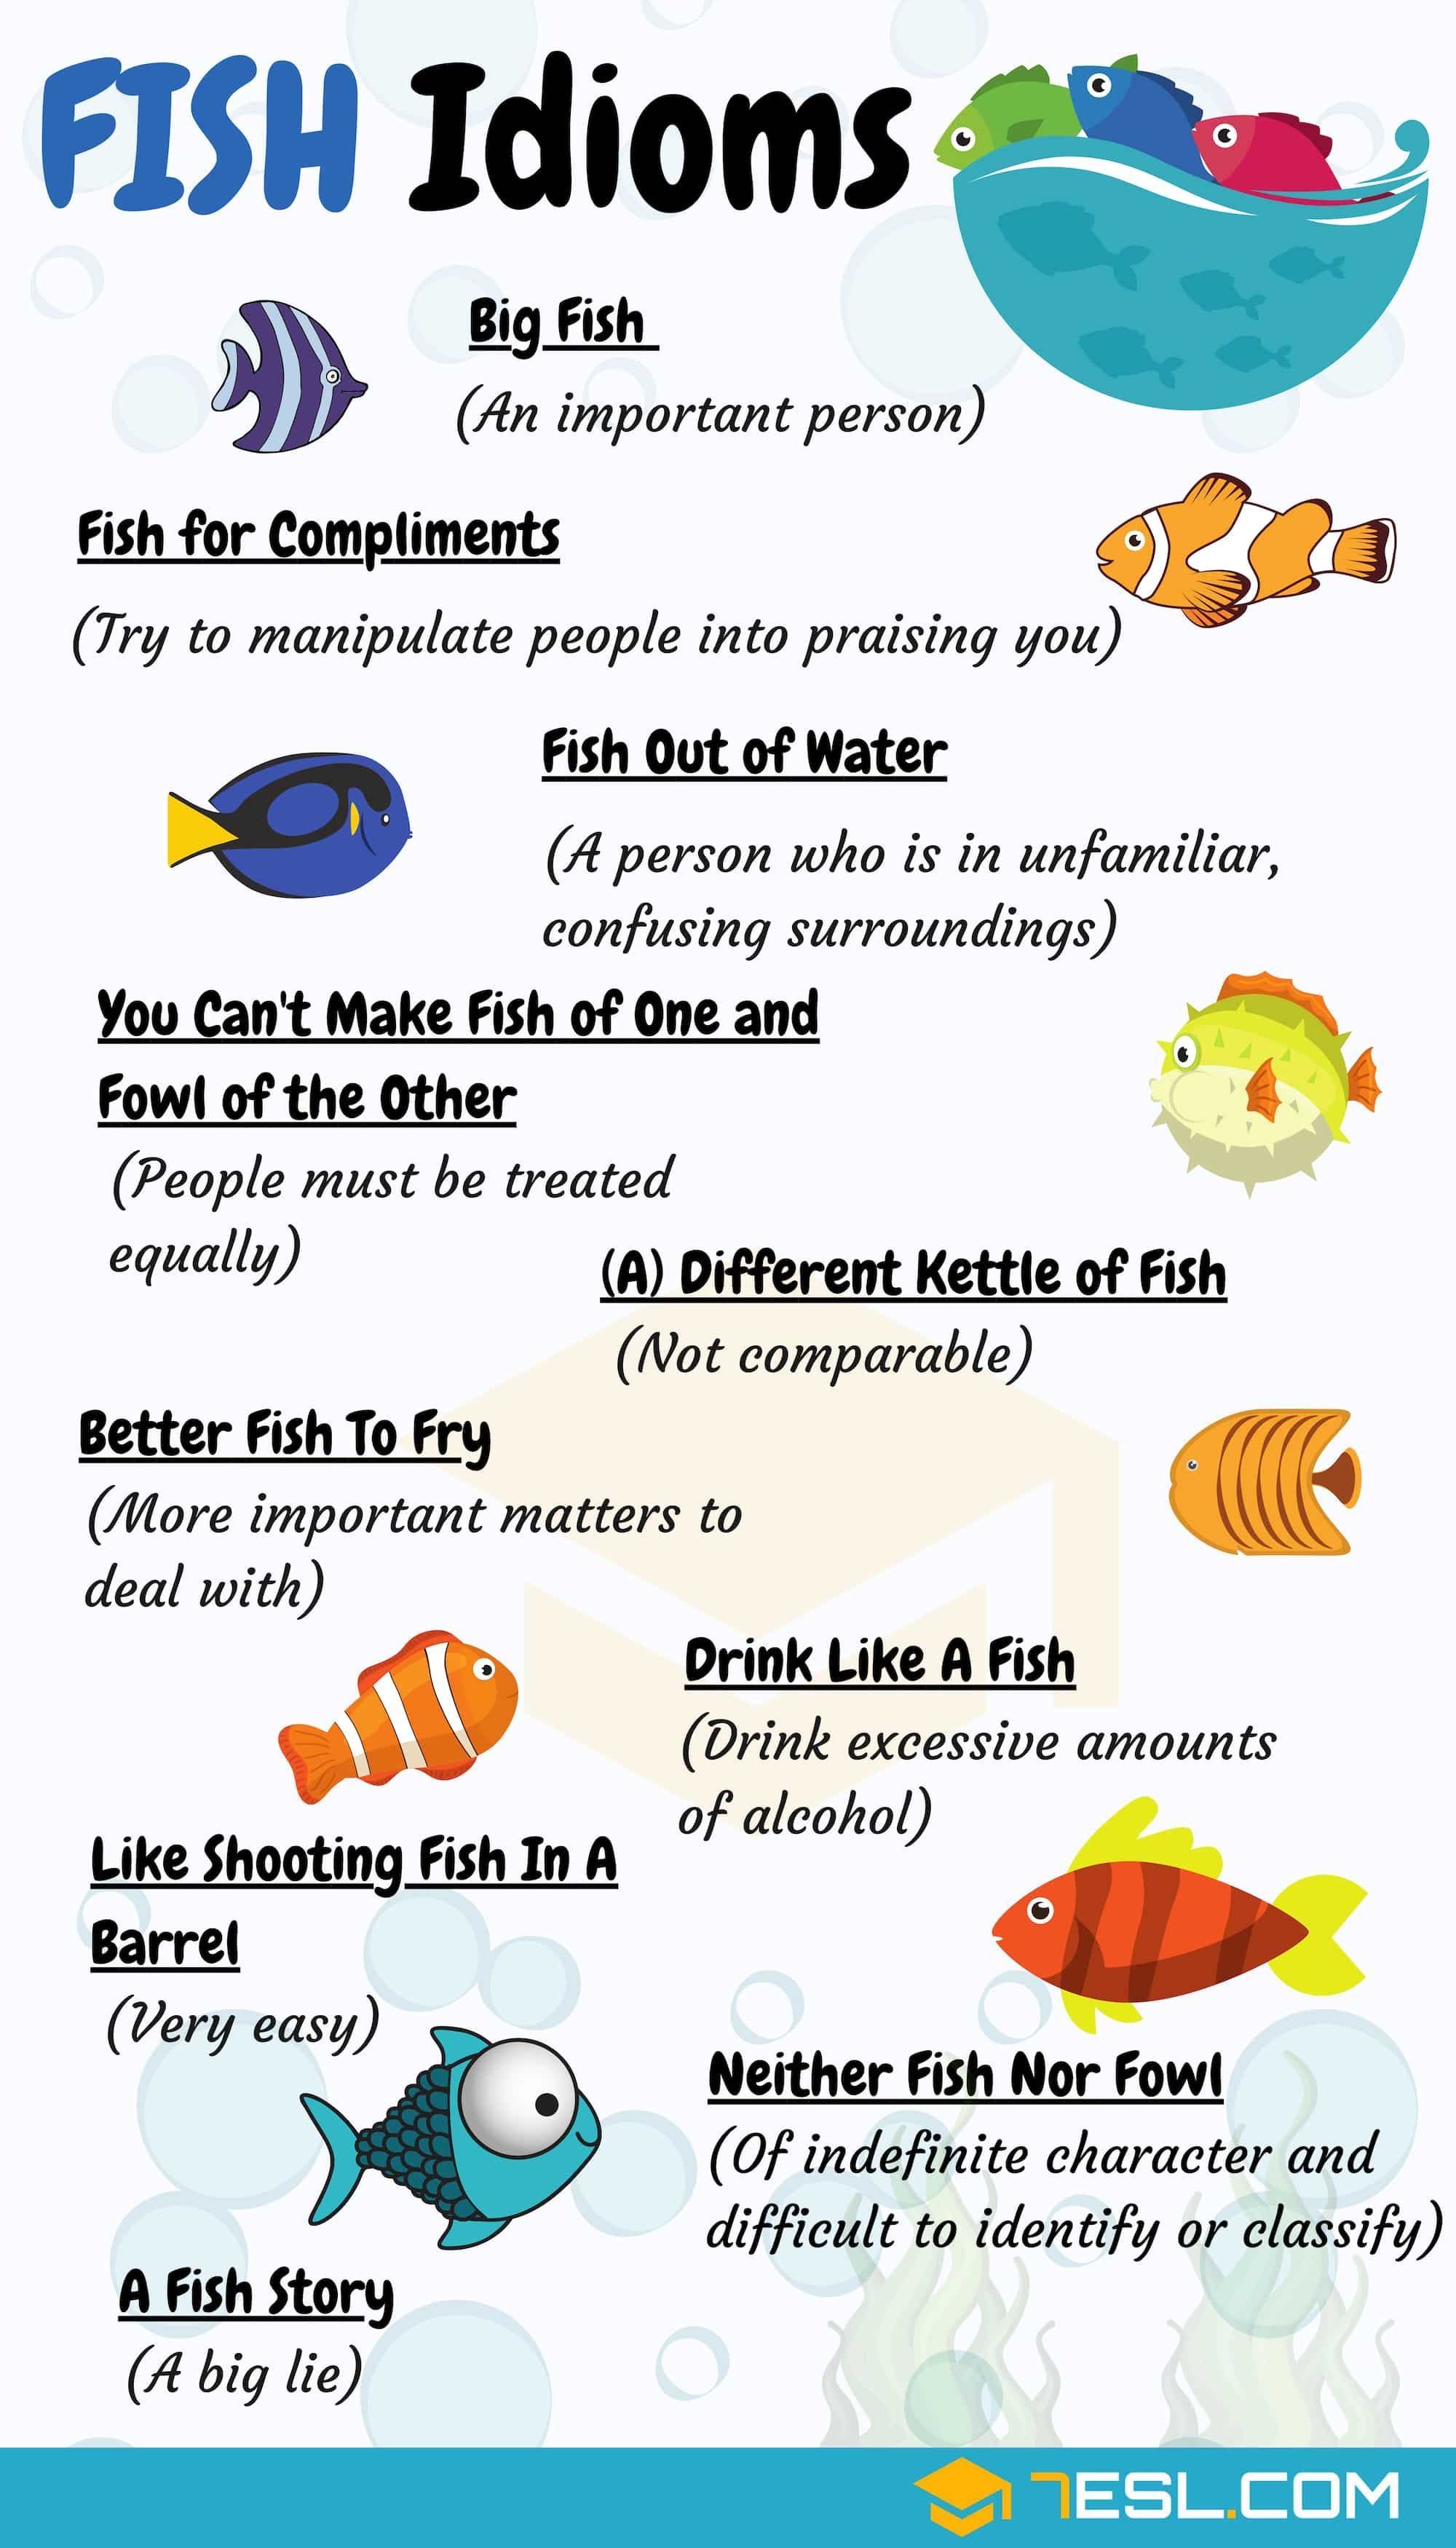 Fish Idioms 18 Useful Fish Idioms And Phrases